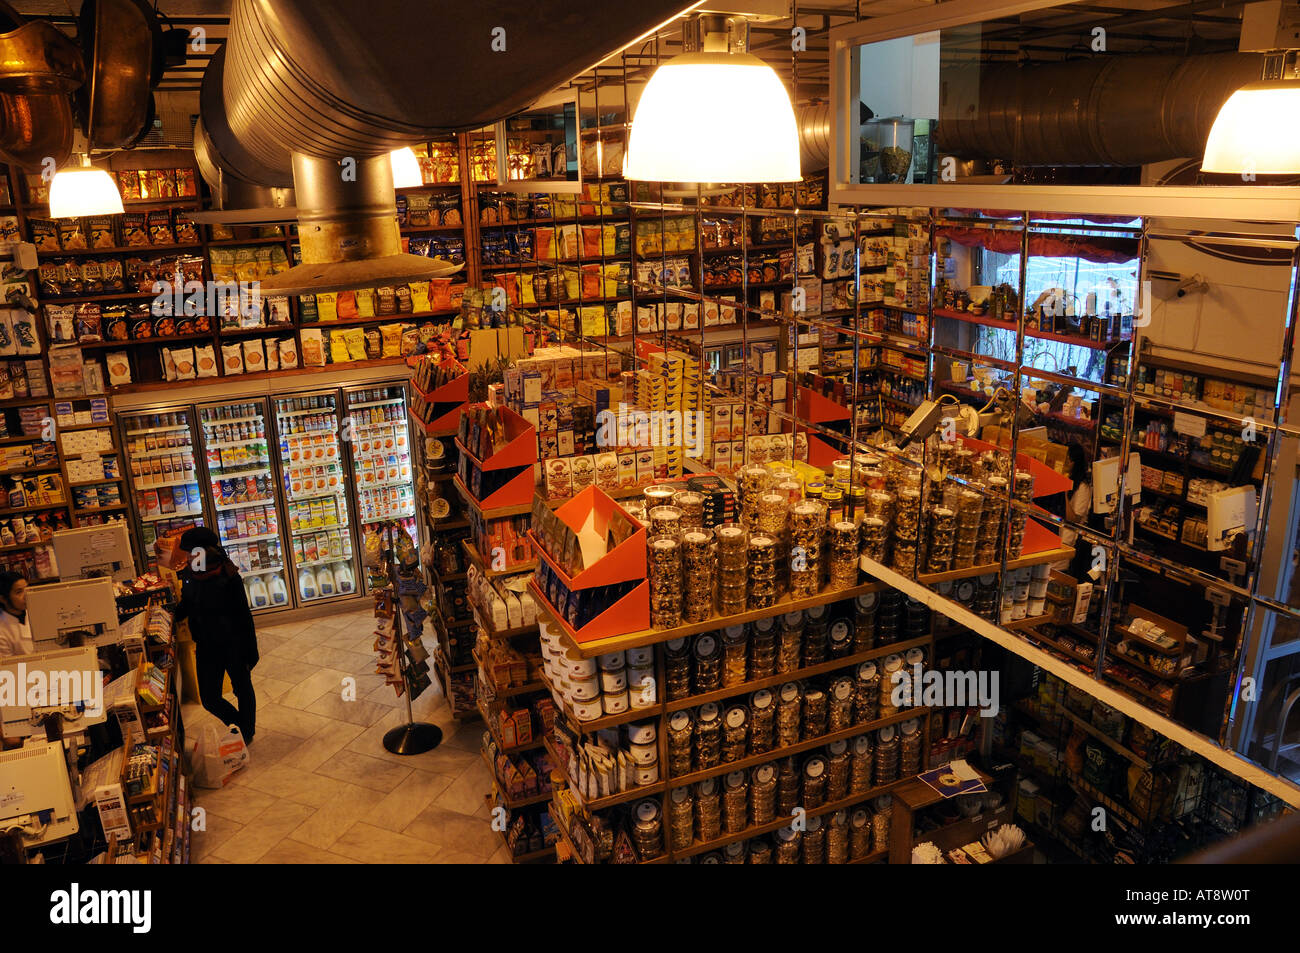 Interior of a small grocery store in lower manhattan new york city stock